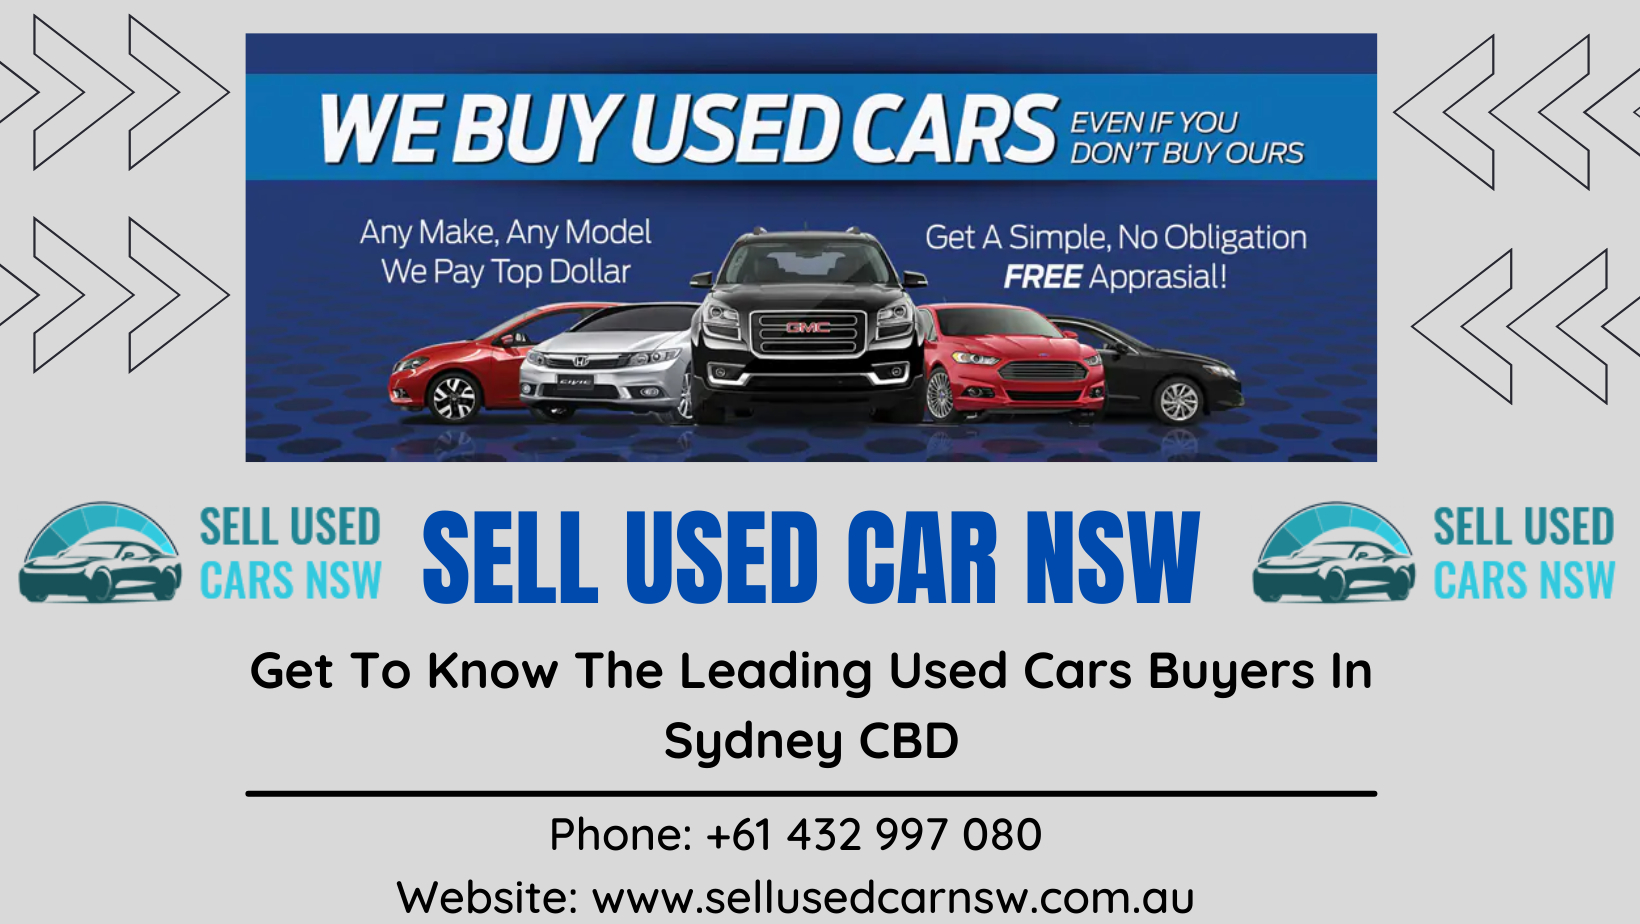 Get To Know The Leading Used Cars Buyers In Sydney CBD